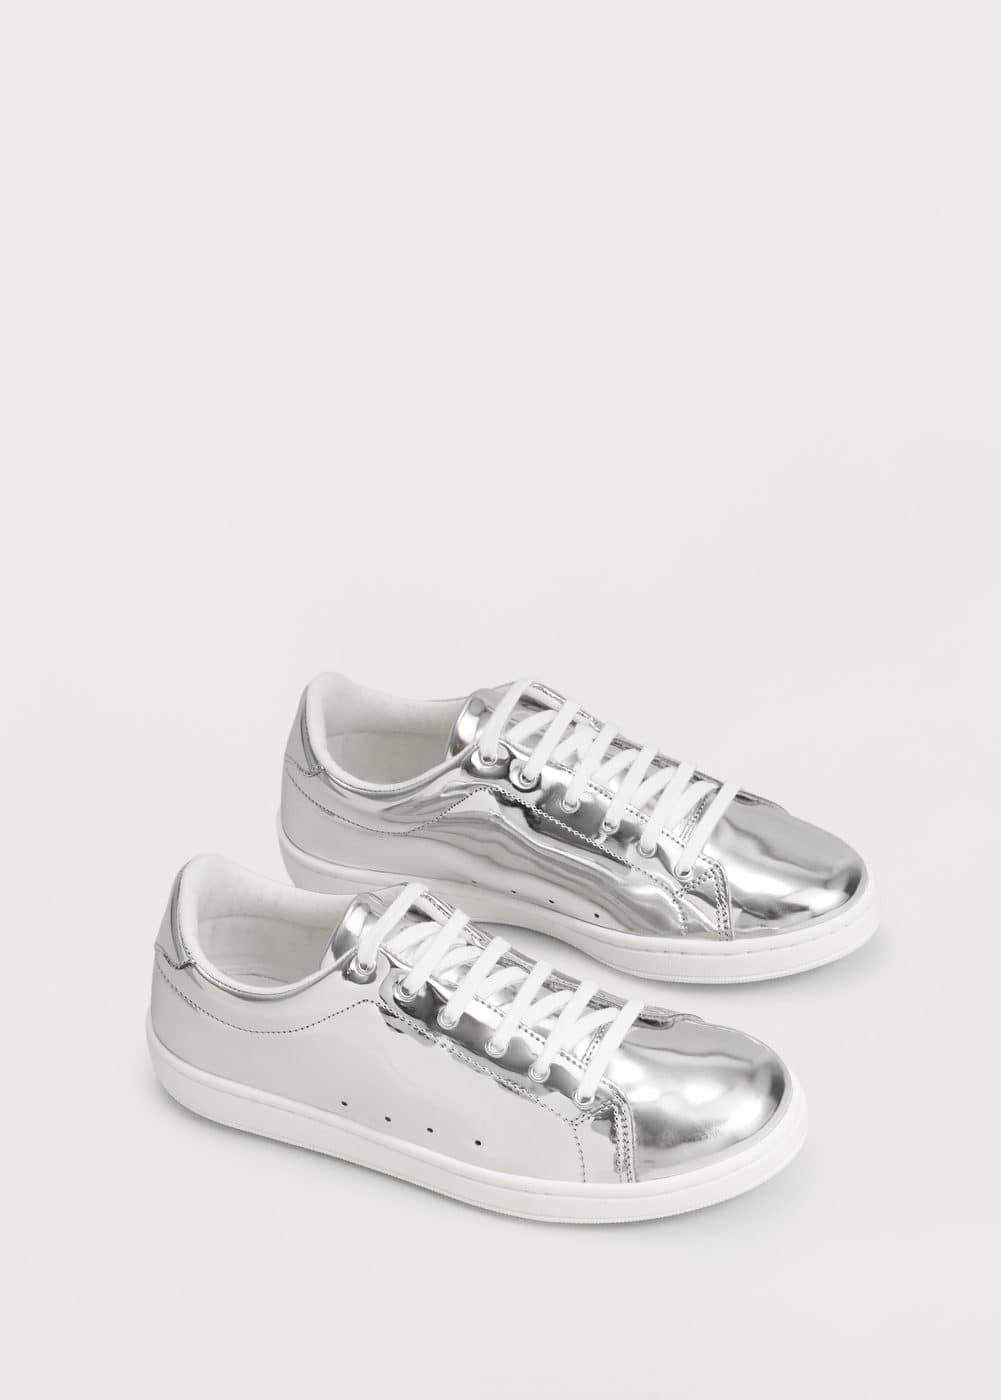 Metallic lace-up sneakers | VIOLETA BY MANGO